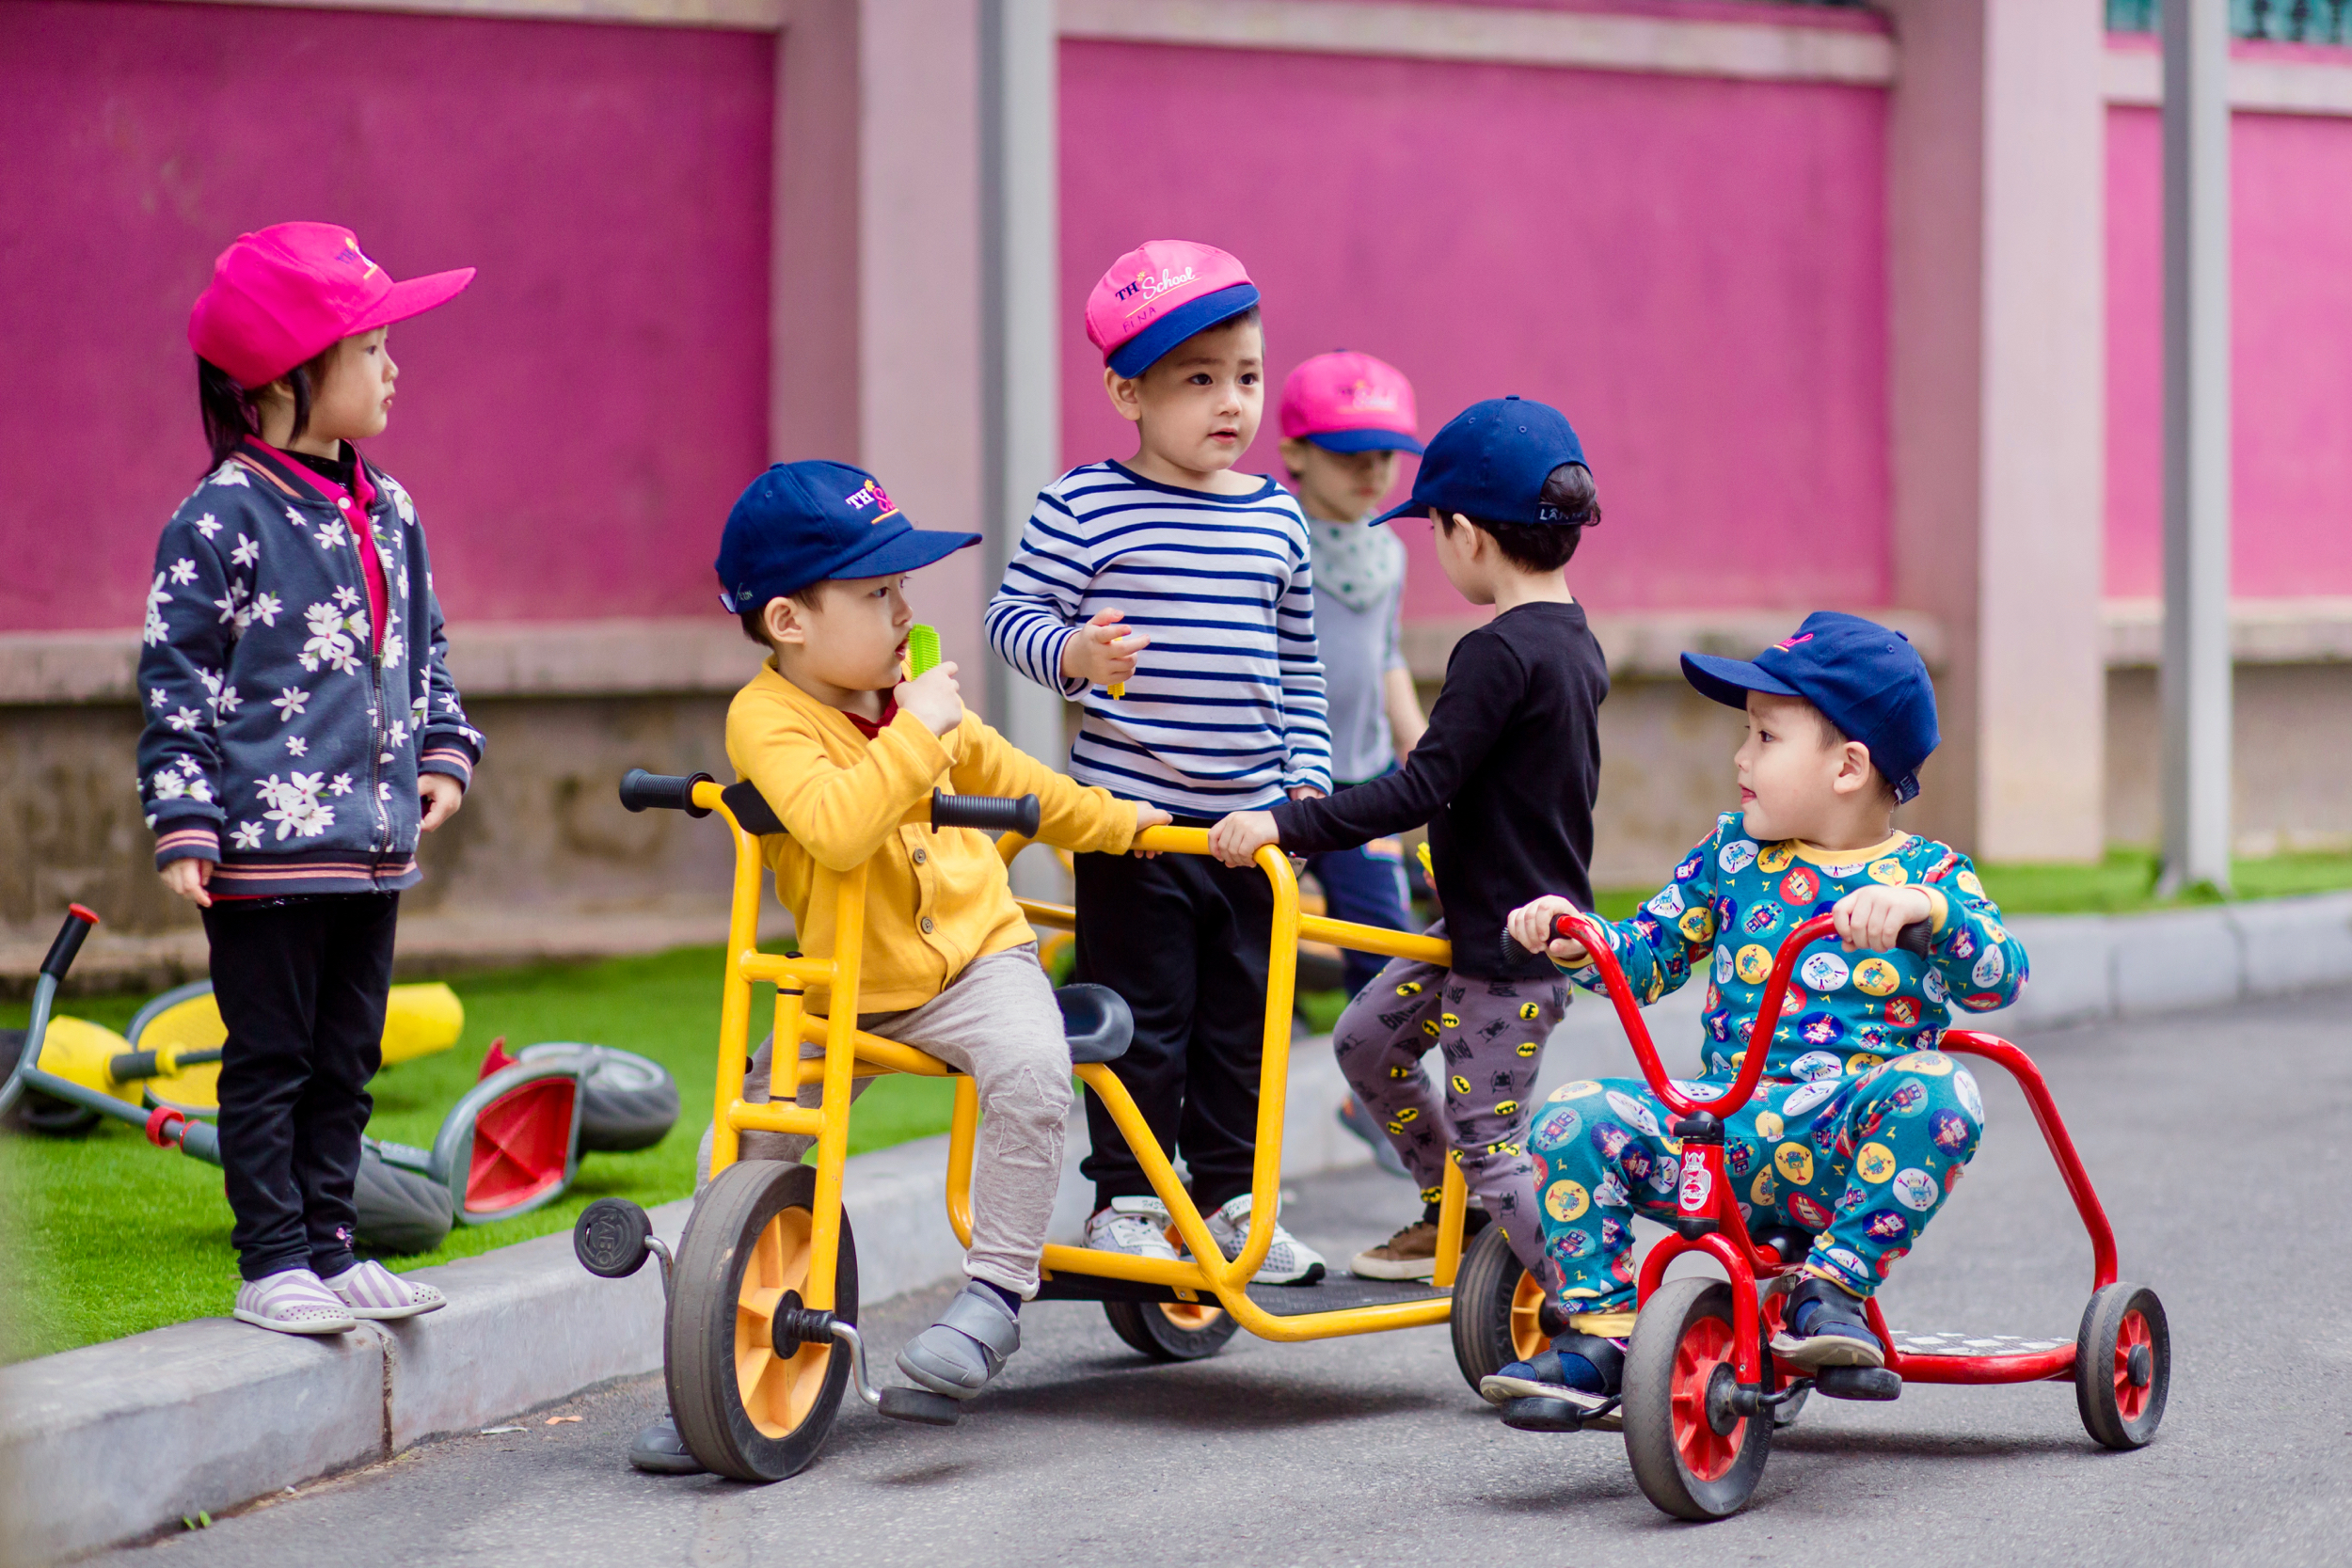 KG playground tricycles.jpg